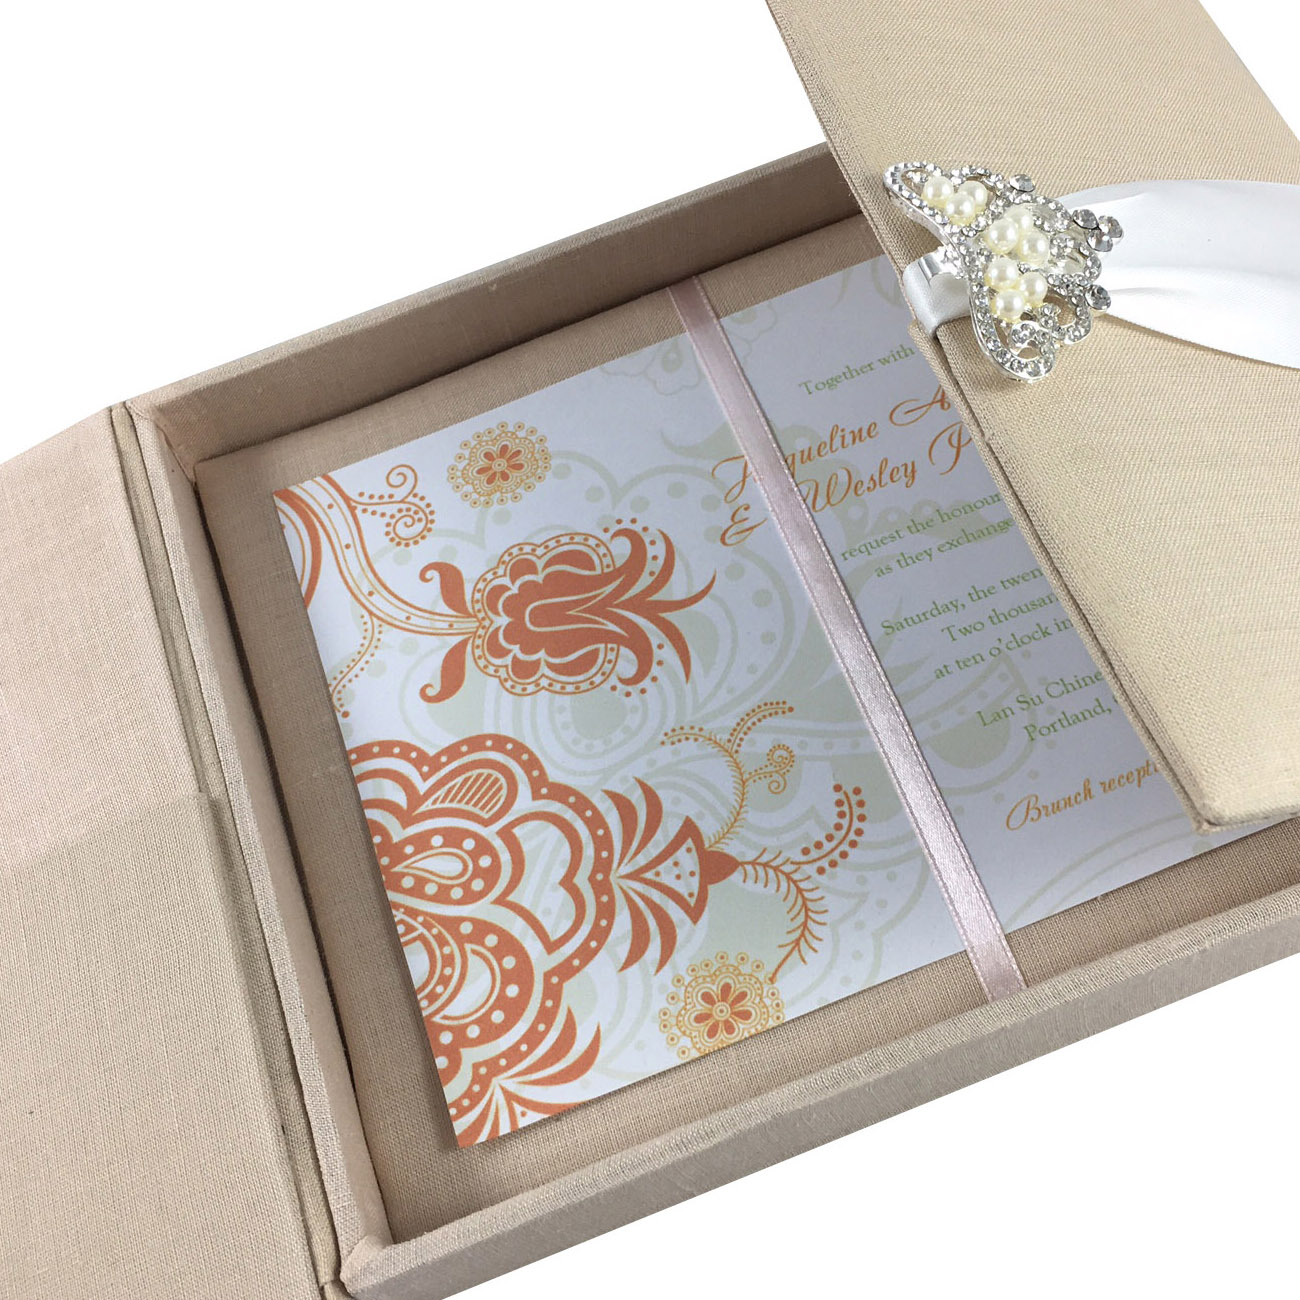 Large Hand-Crafted Linen Box For Wedding Invitation Cards With ...